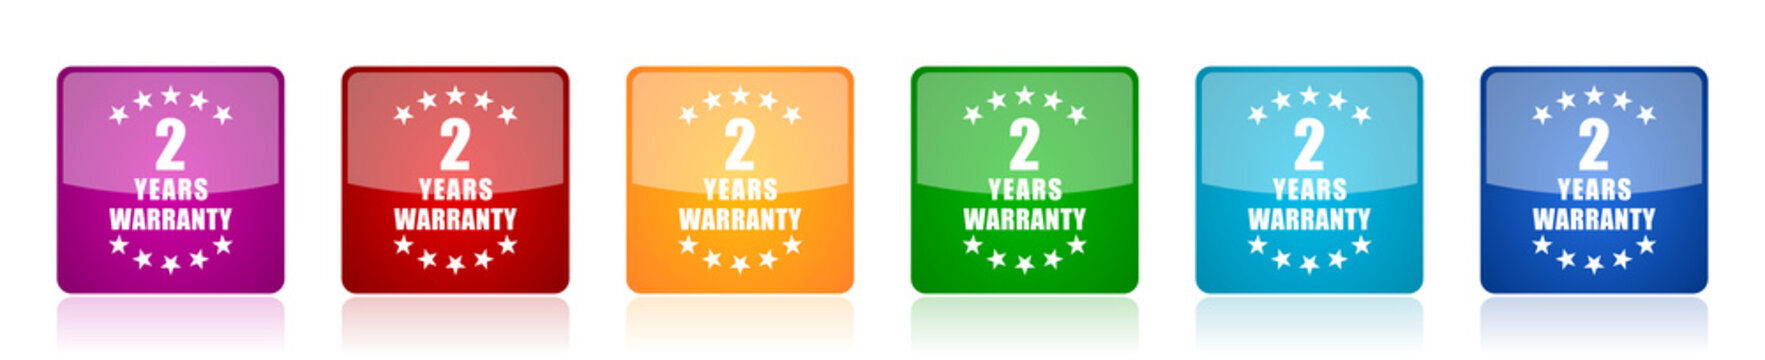 Warranty guarantee 2 year icon set, colorful square glossy vector illustrations in 6 options for web design and mobile applications